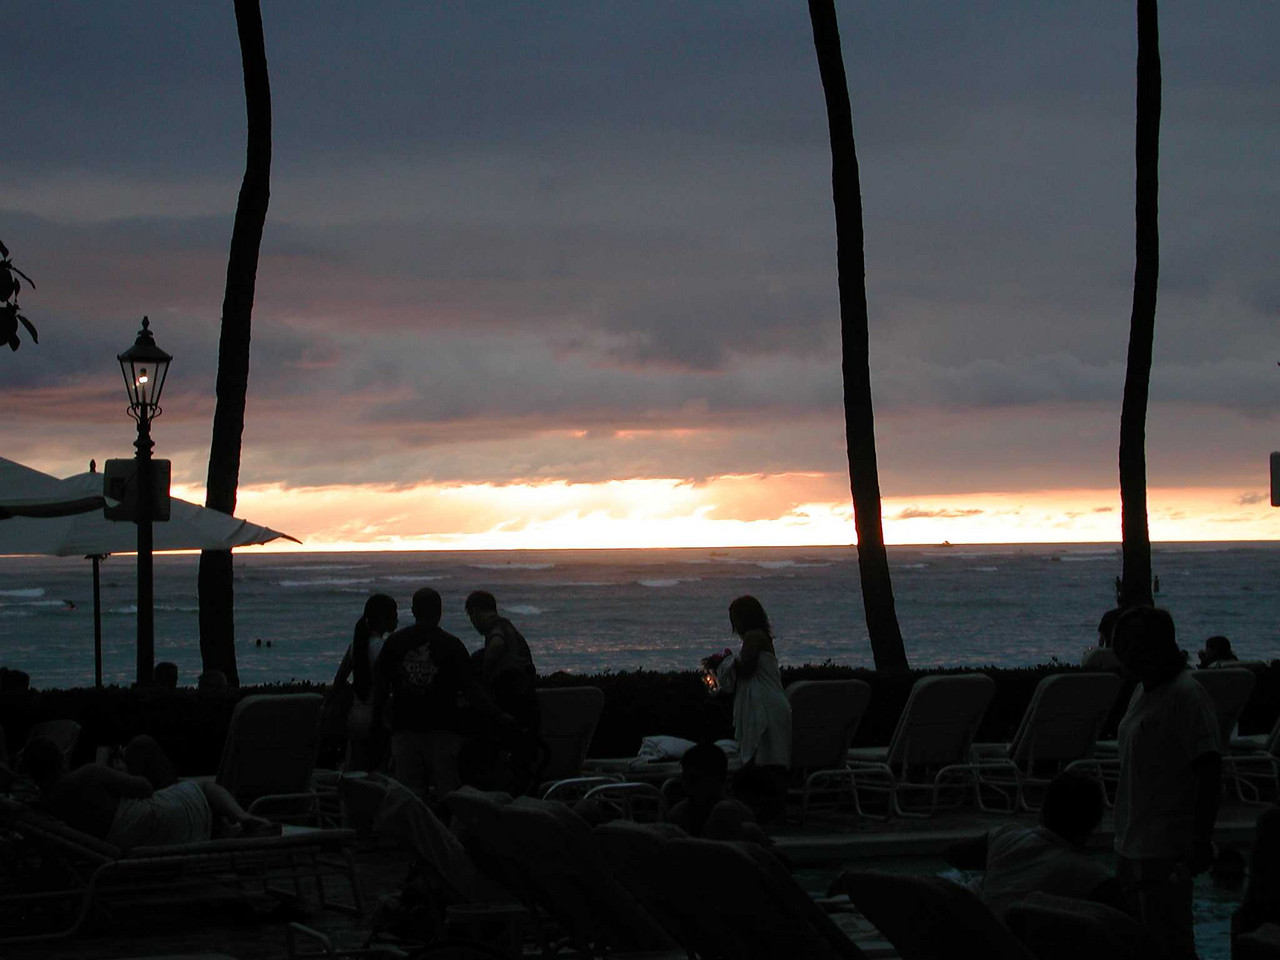 Lots of sunset pics, but no green flash.